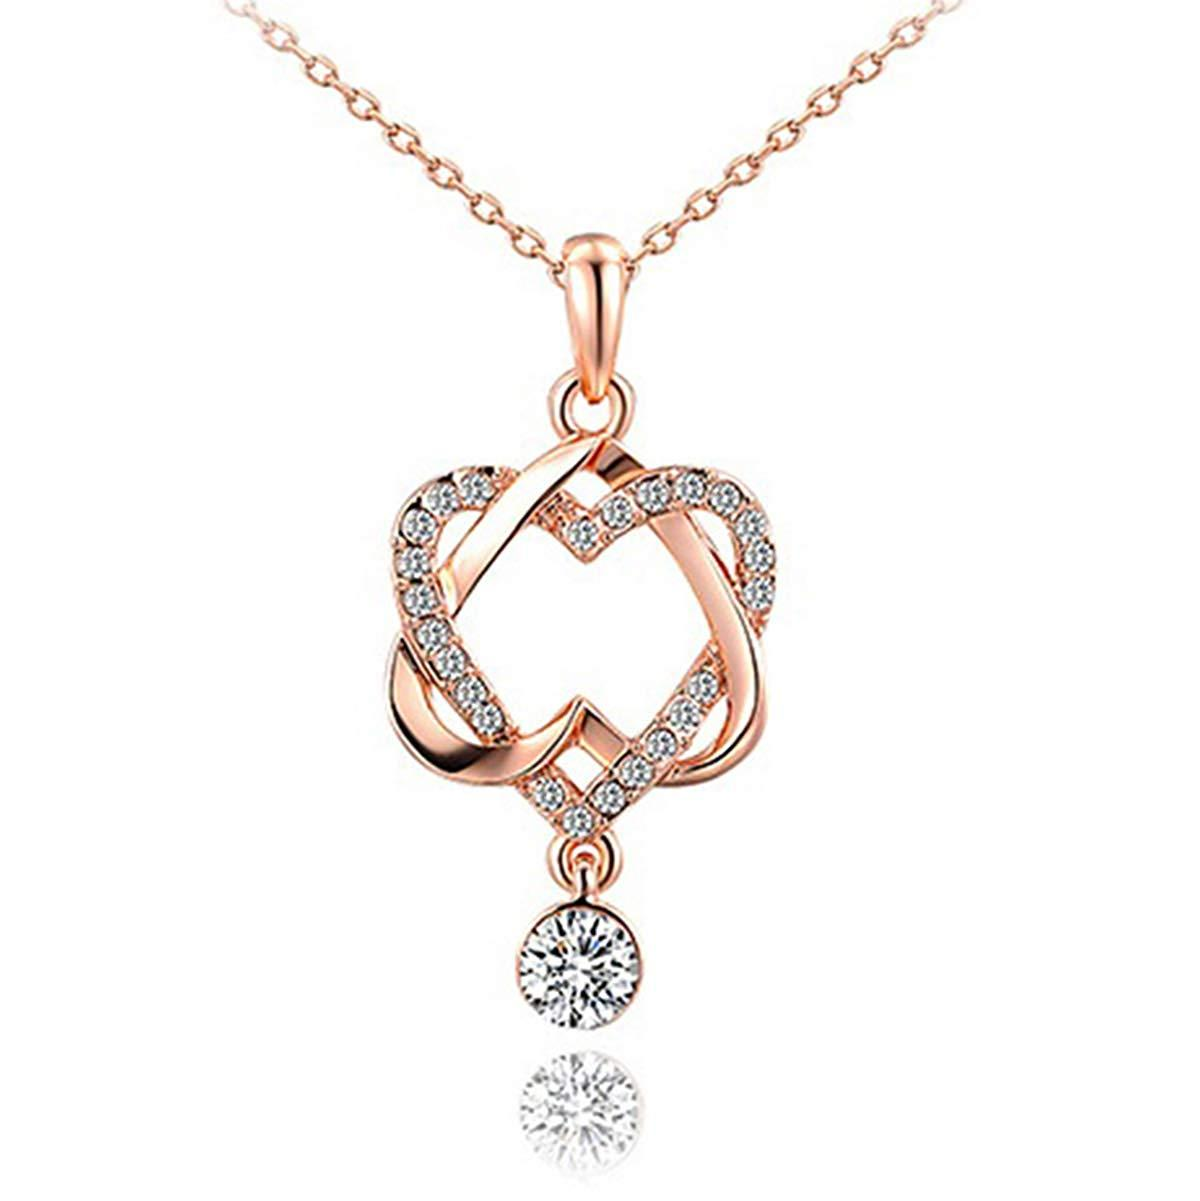 Delia Joyce Double Heart Necklace for Her